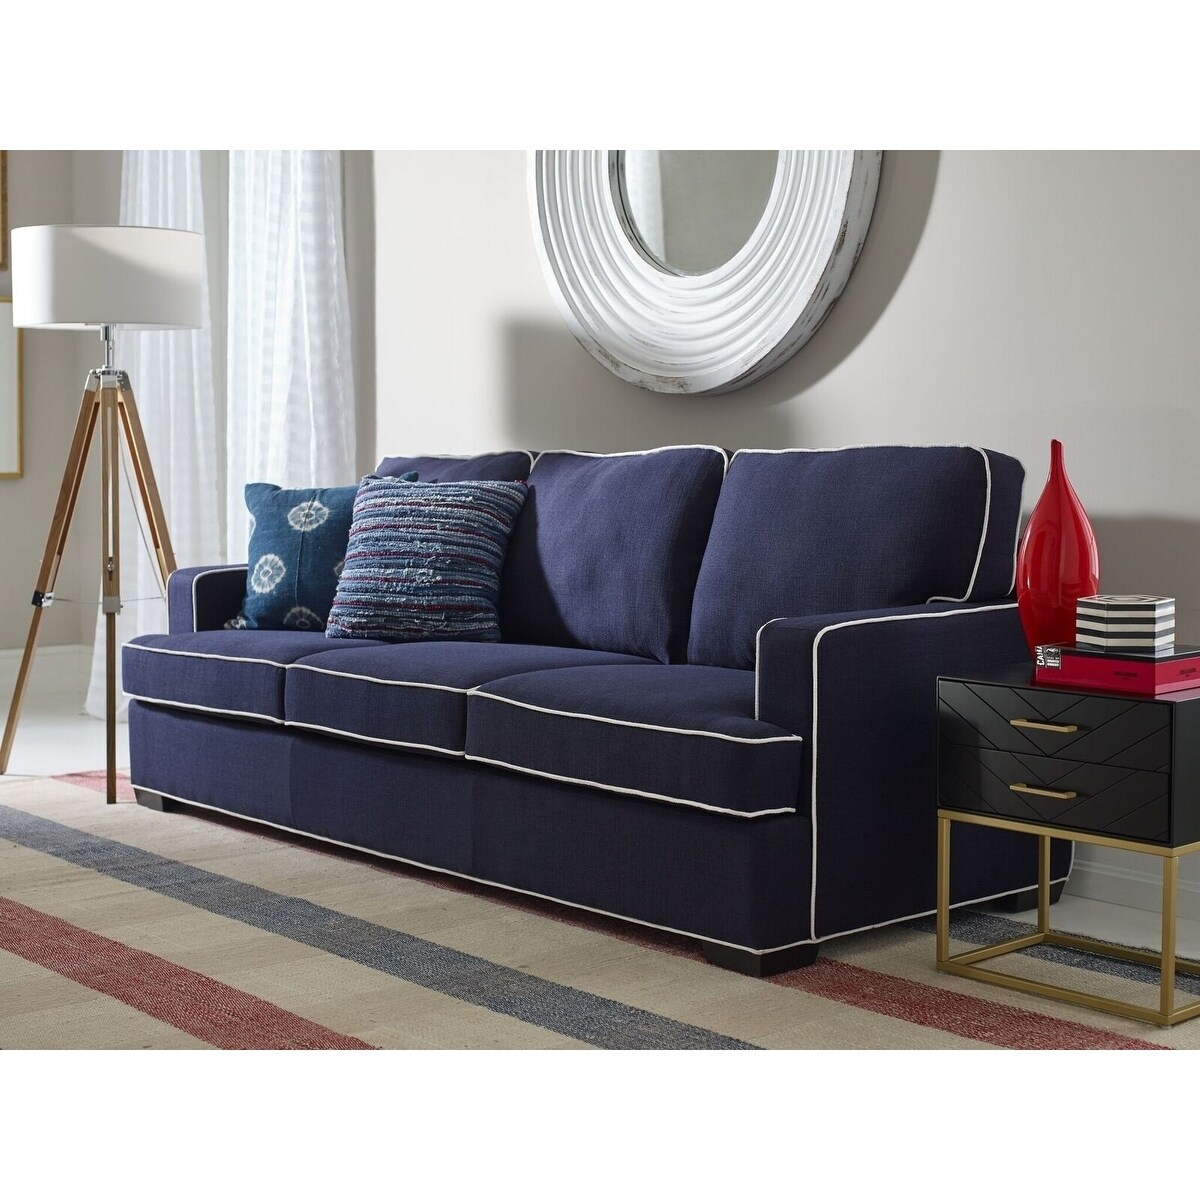 Tommy Hilfiger Cardiff Sofa Free Shipping Today 22816956